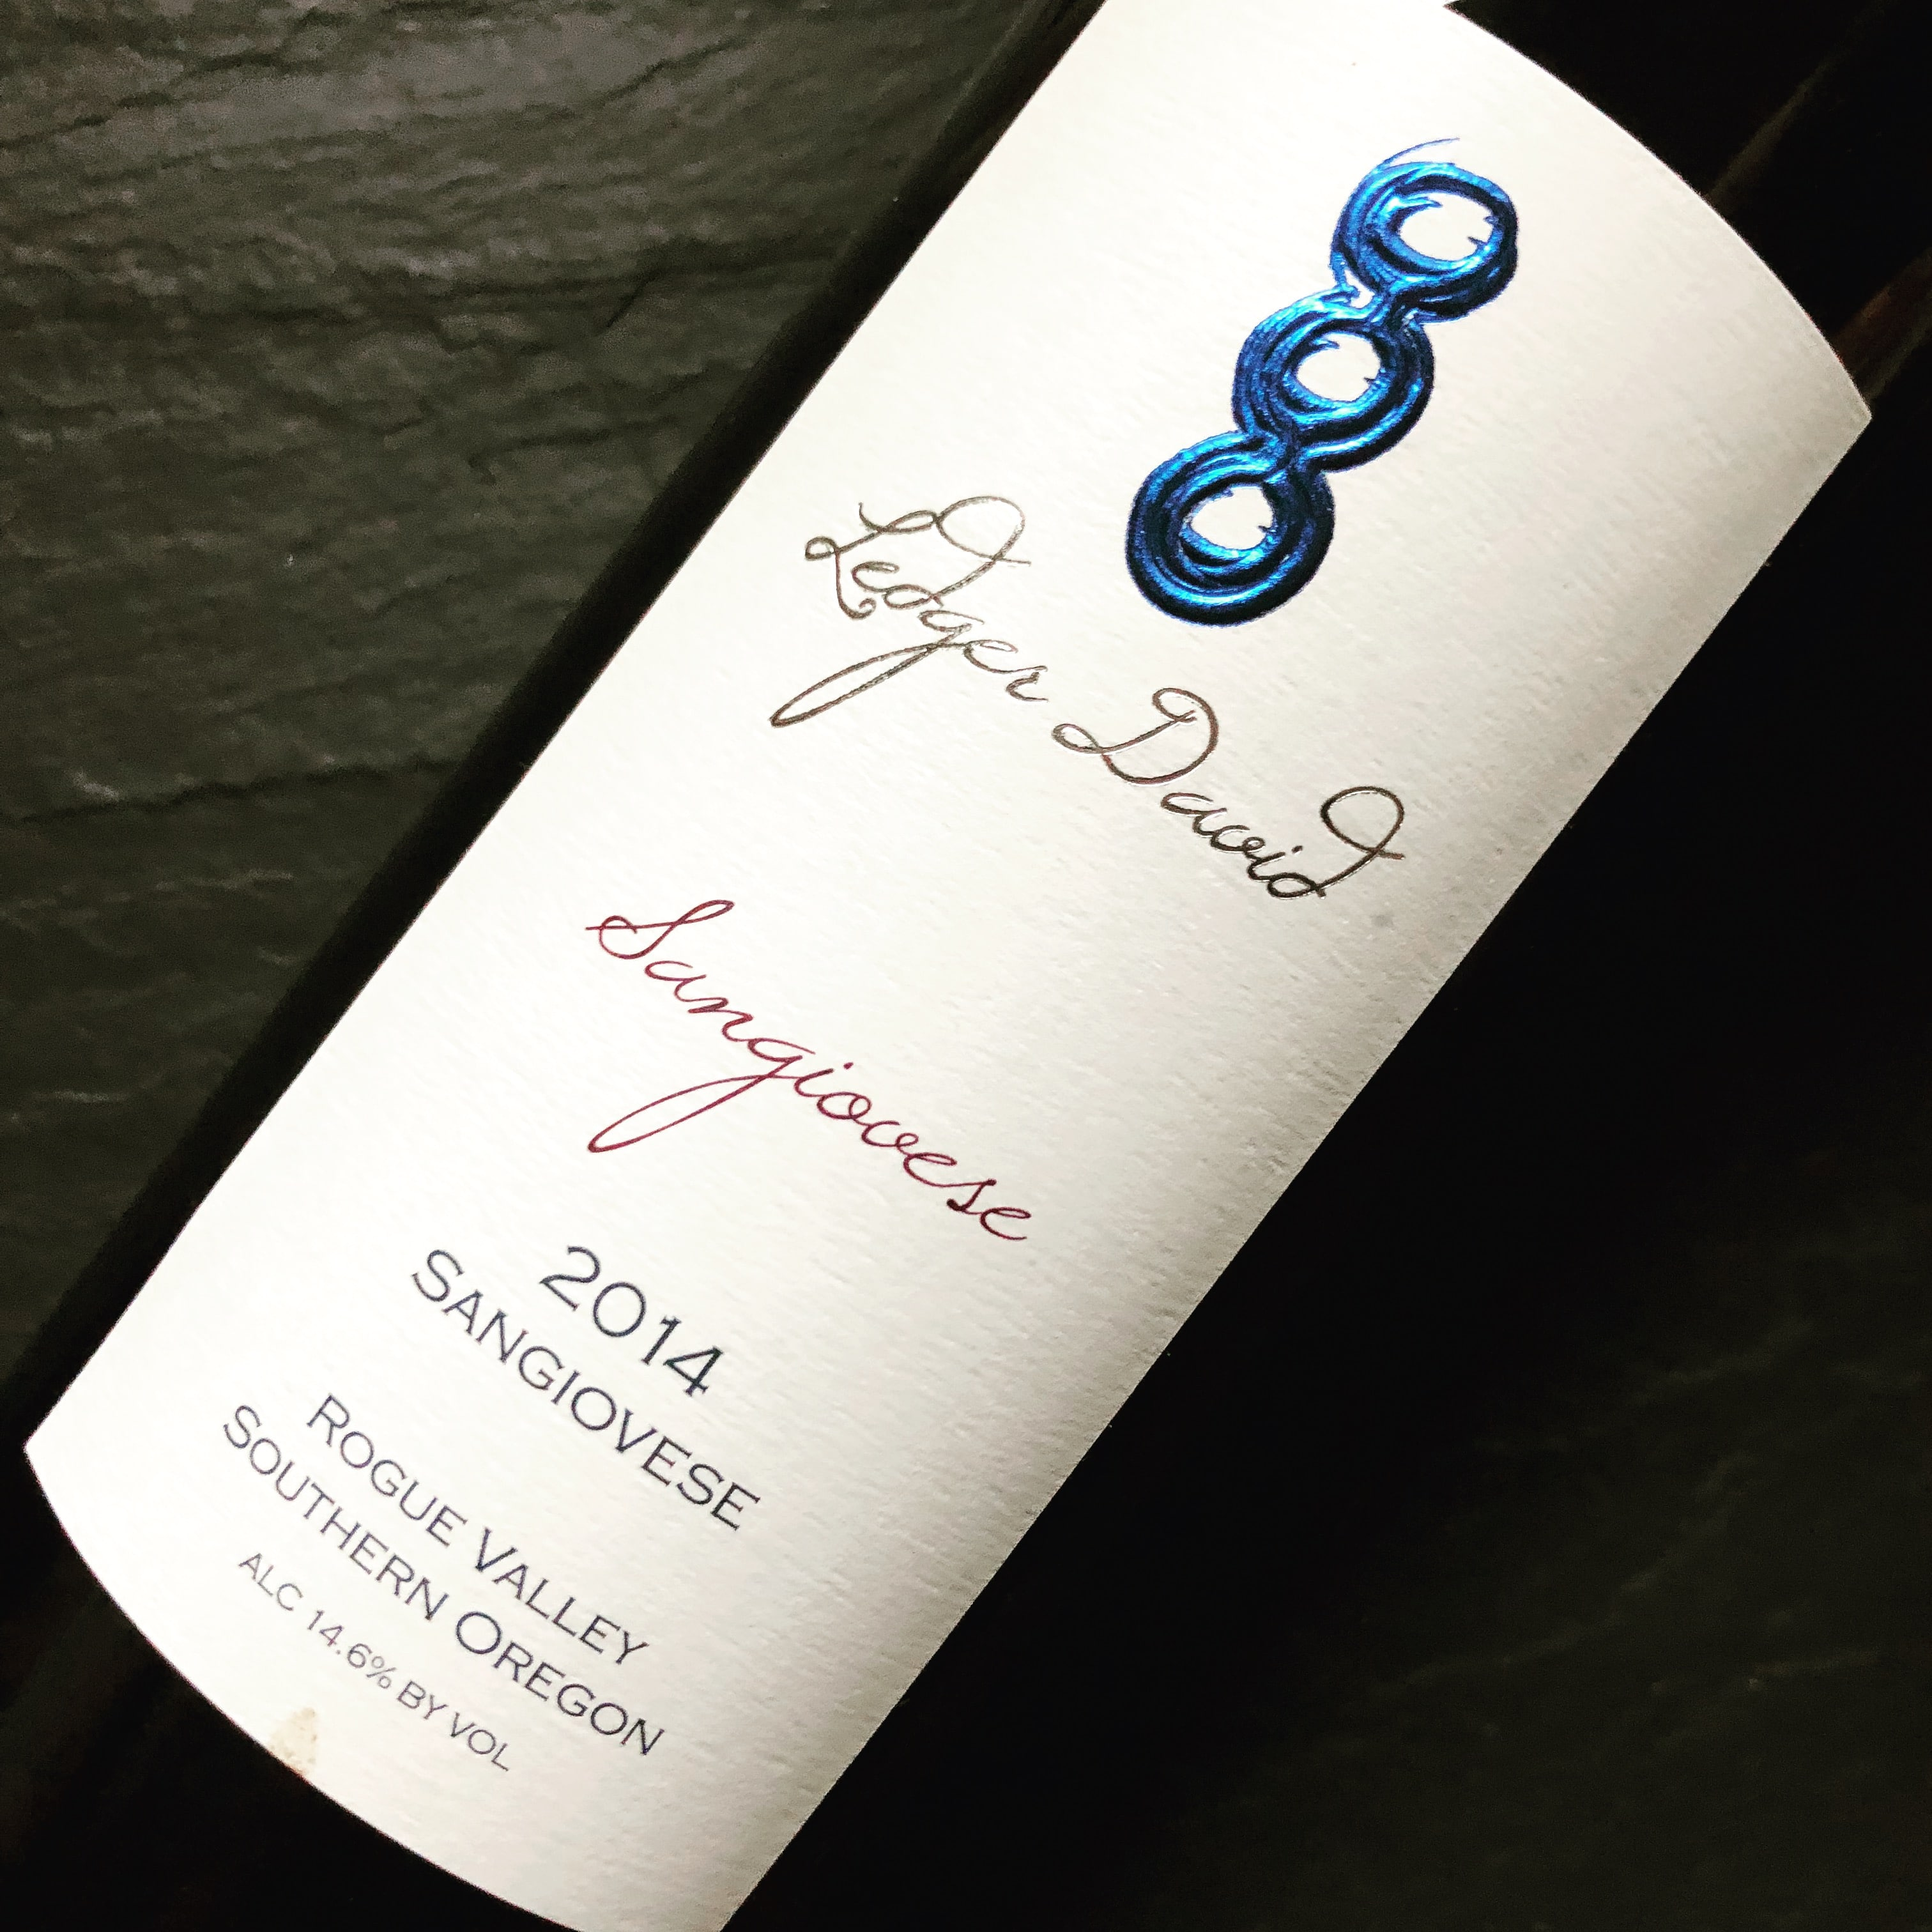 Ledger David Rouge Valley Southern Oregon Sangiovese 2014